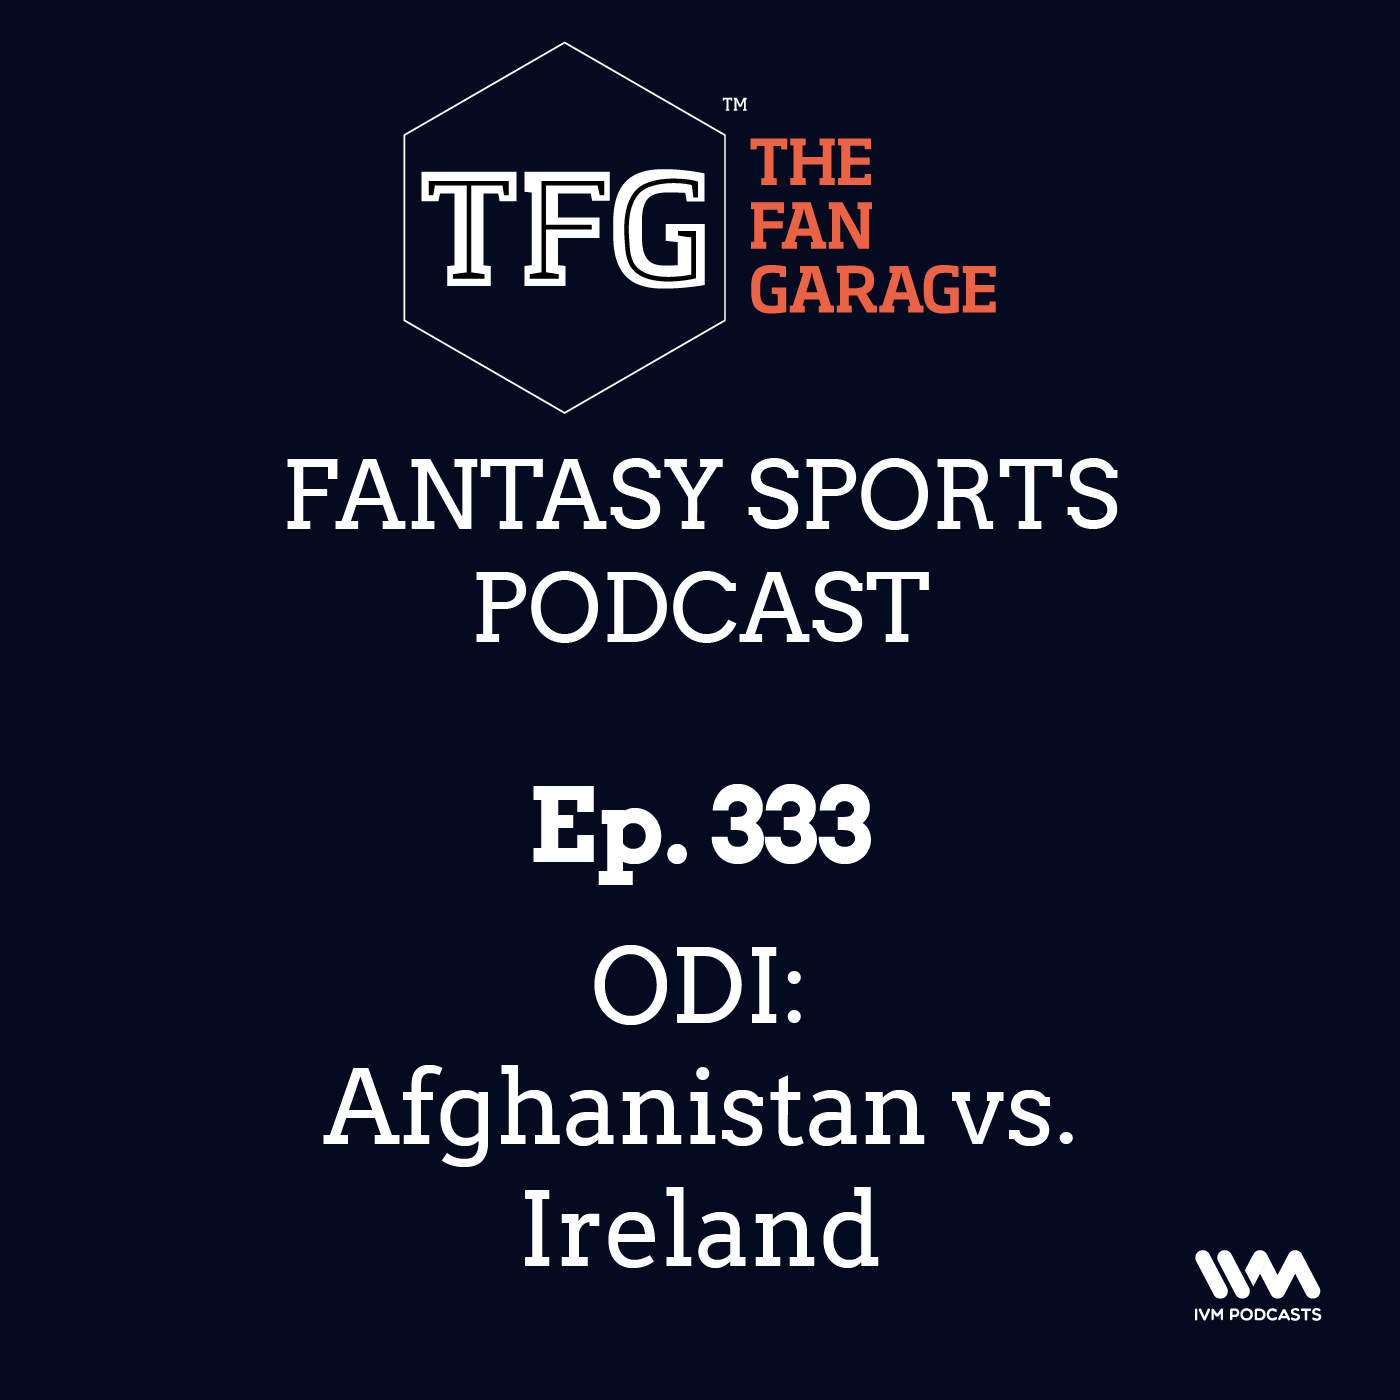 TFG Fantasy Sports Podcast Ep. 333: ODI: Afghanistan vs. Ireland